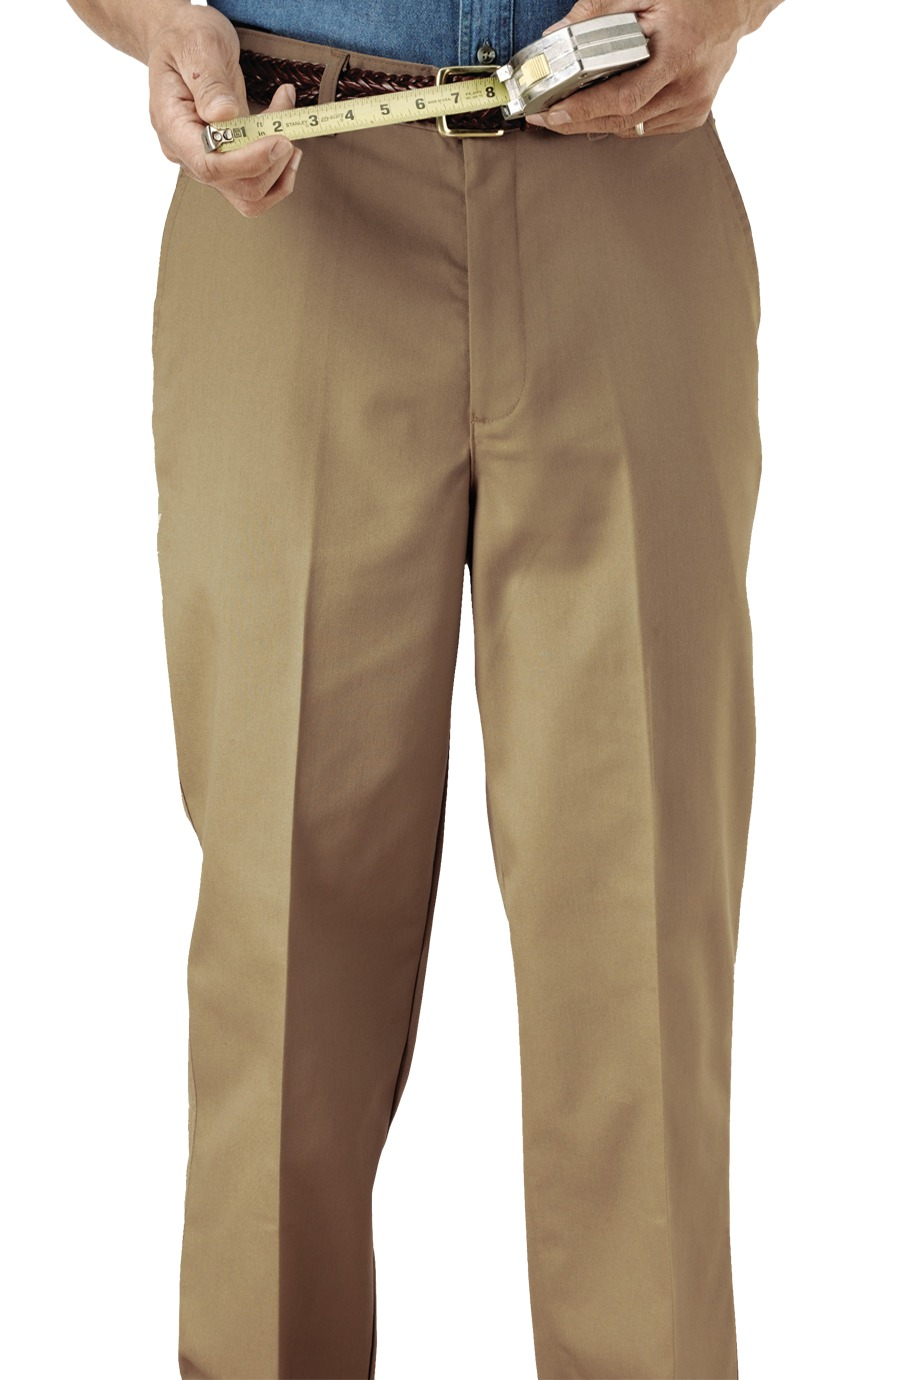 Edwards Garment 2577 - Men's Utility Flat Front Pant